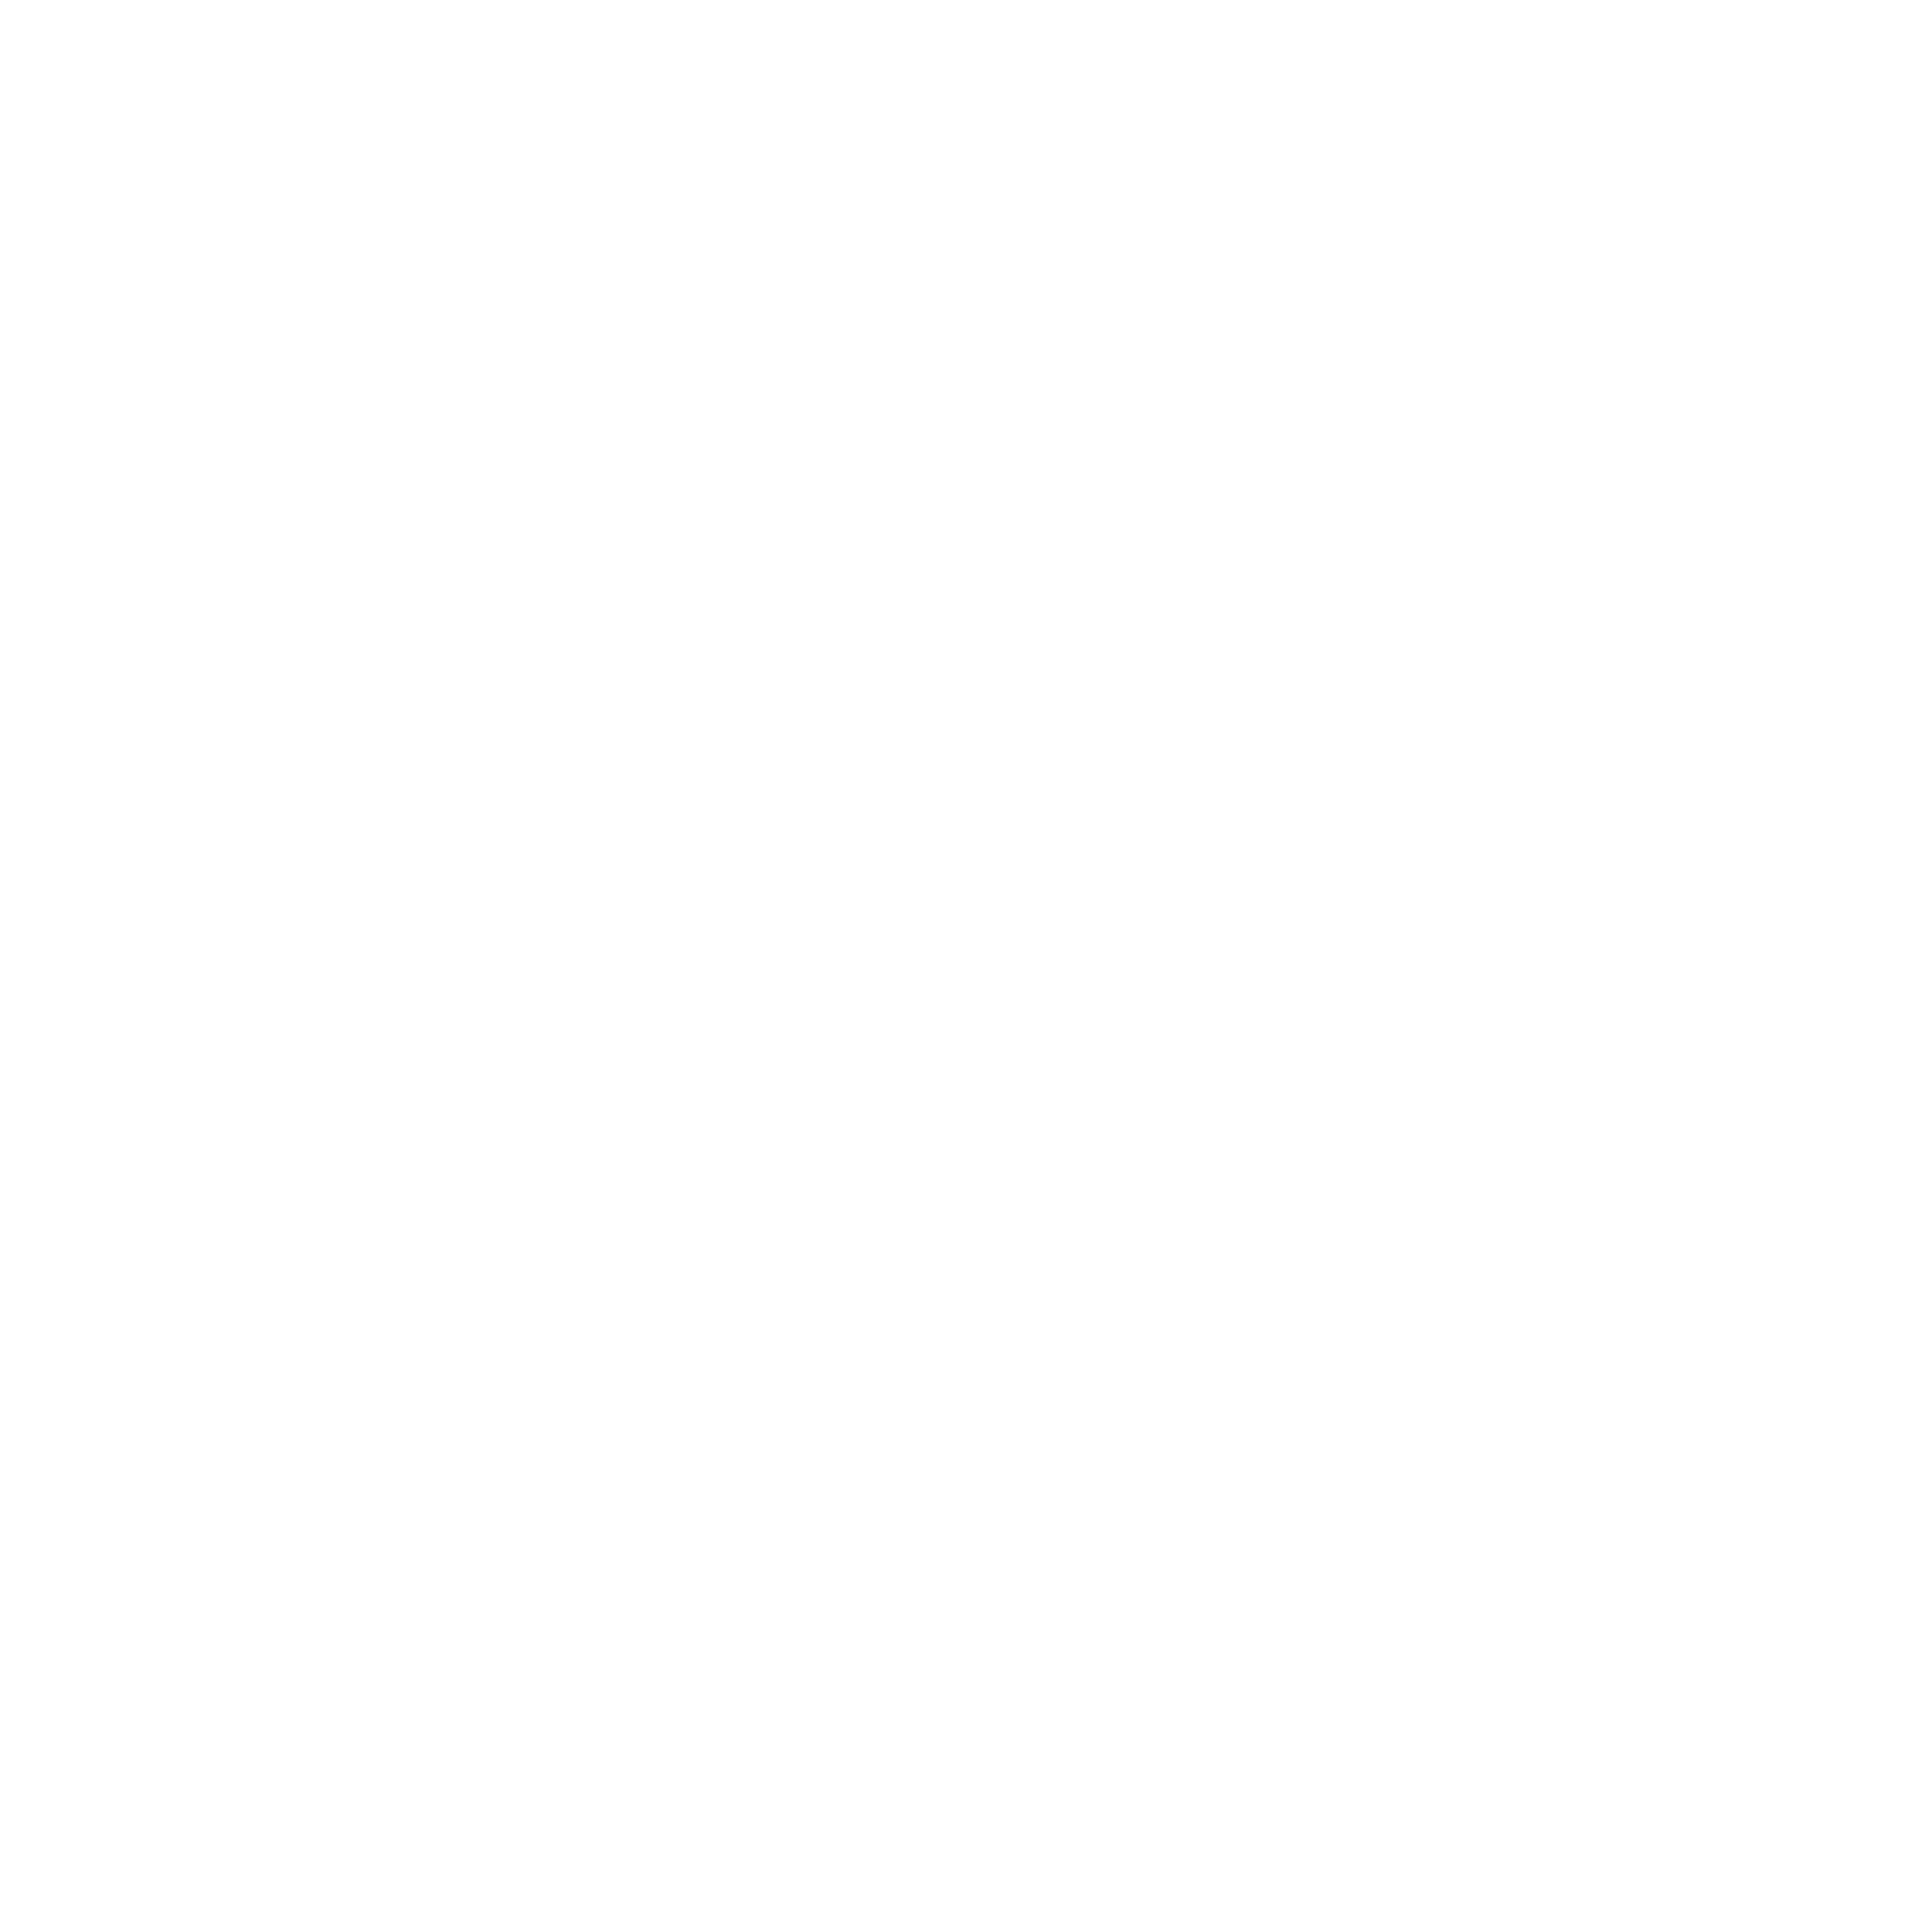 Chevalier.png